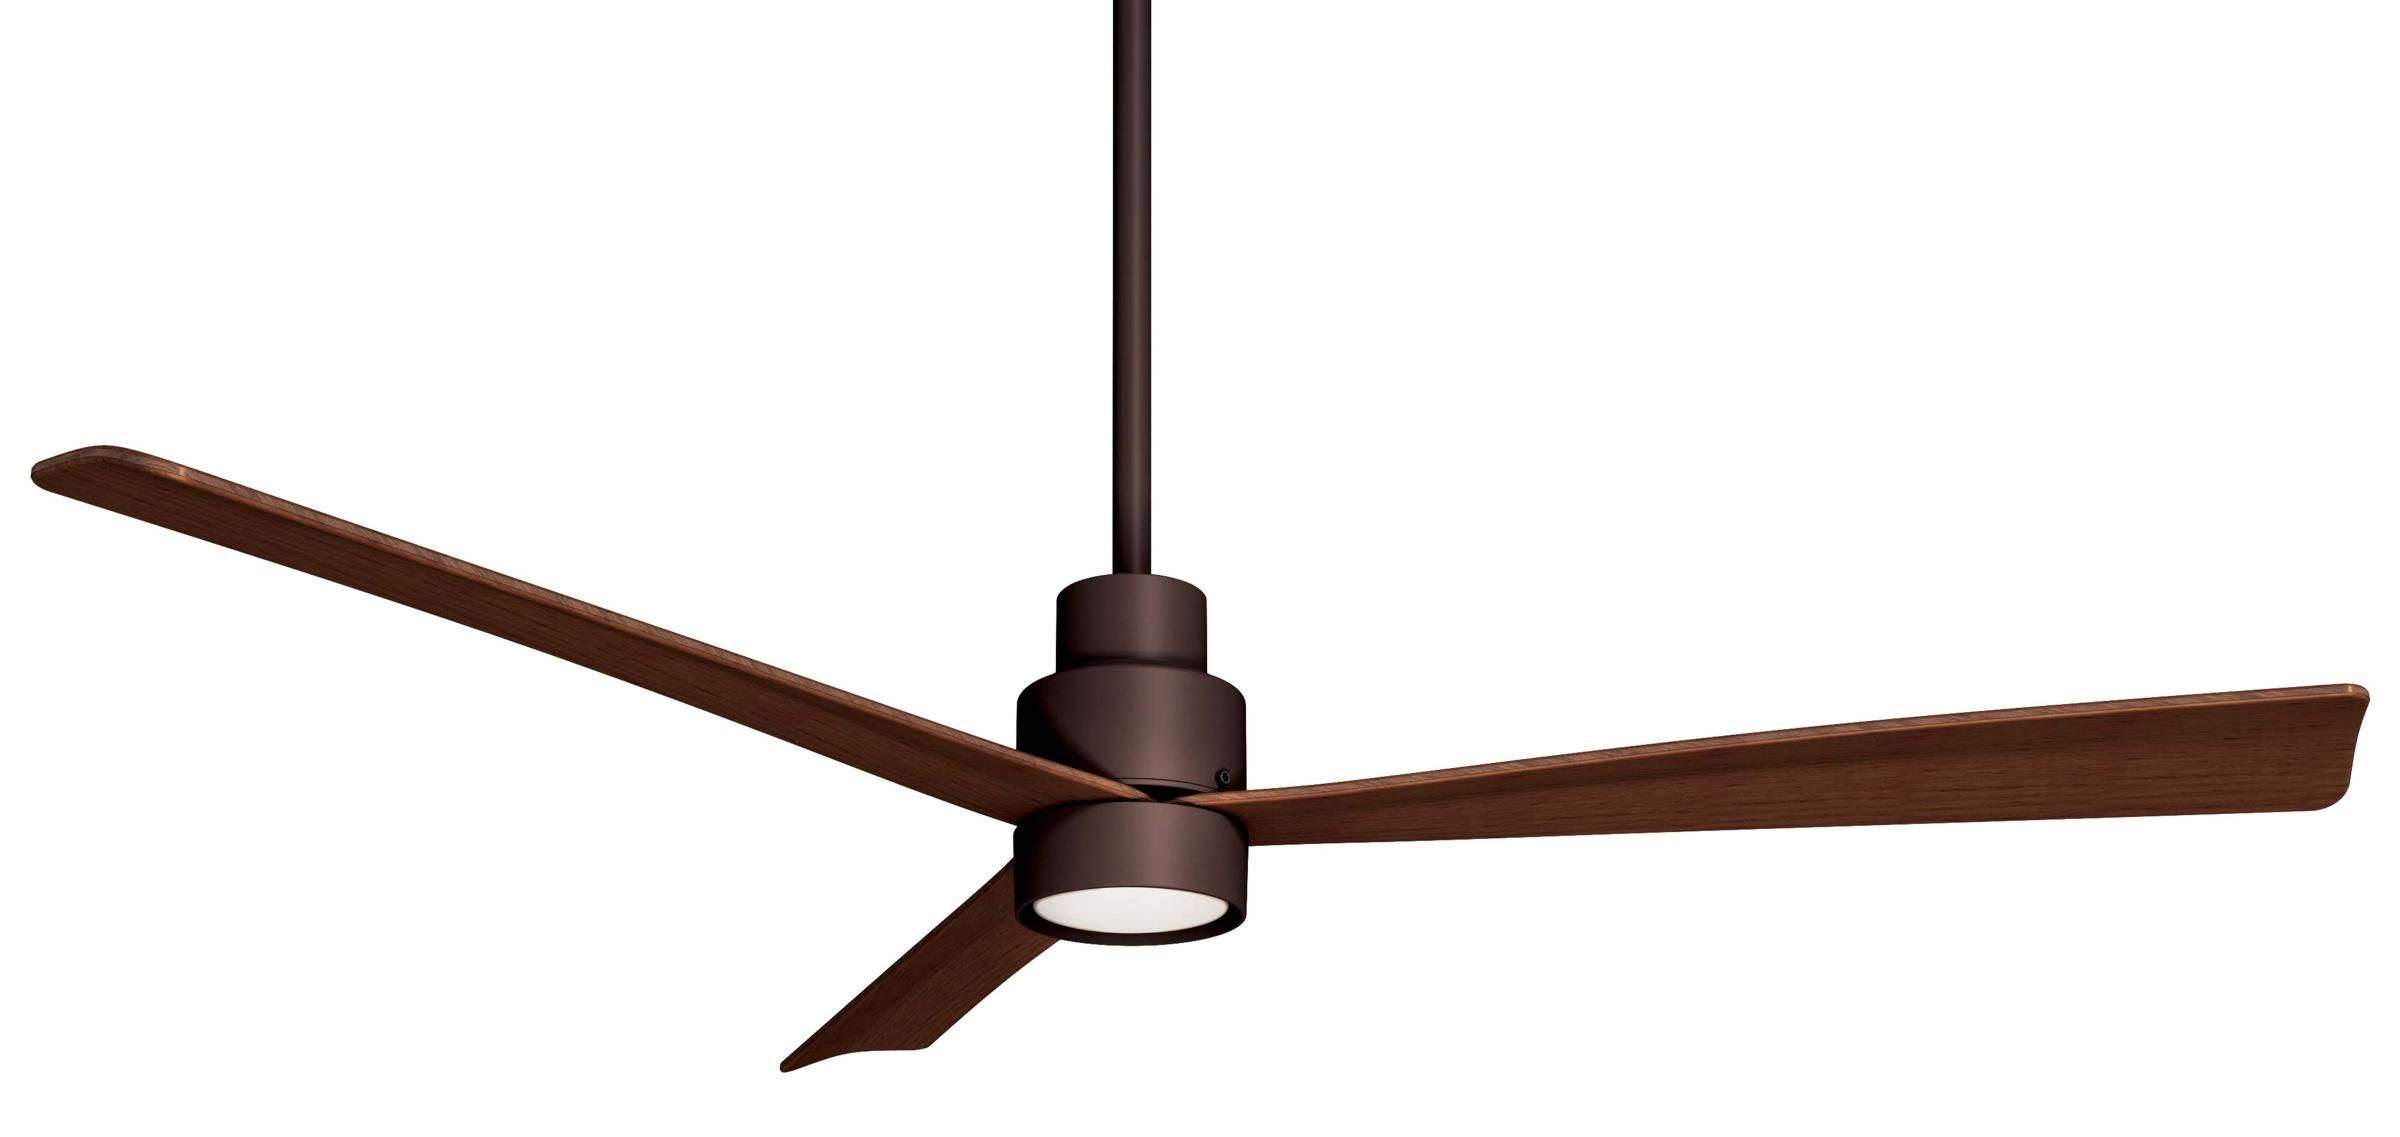 Minka aire simple ceiling fan f787 orb k9787l orb in oil rubbed minka aire simple ceiling fan f787 orb k9787l orb in oil rubbed bronze aloadofball Choice Image